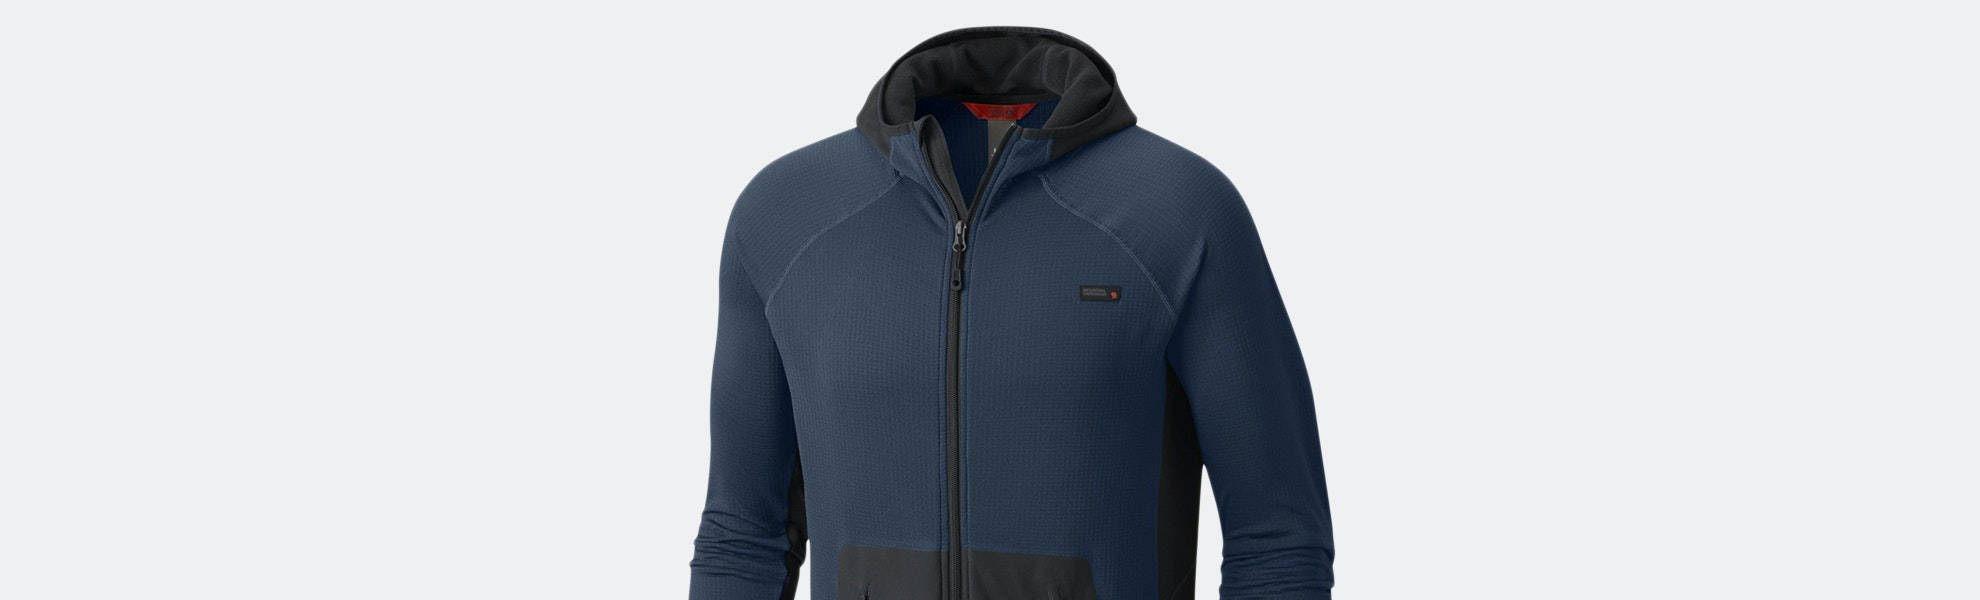 Mountain Hardwear Terabyte Men's Full-Zip Hoodie